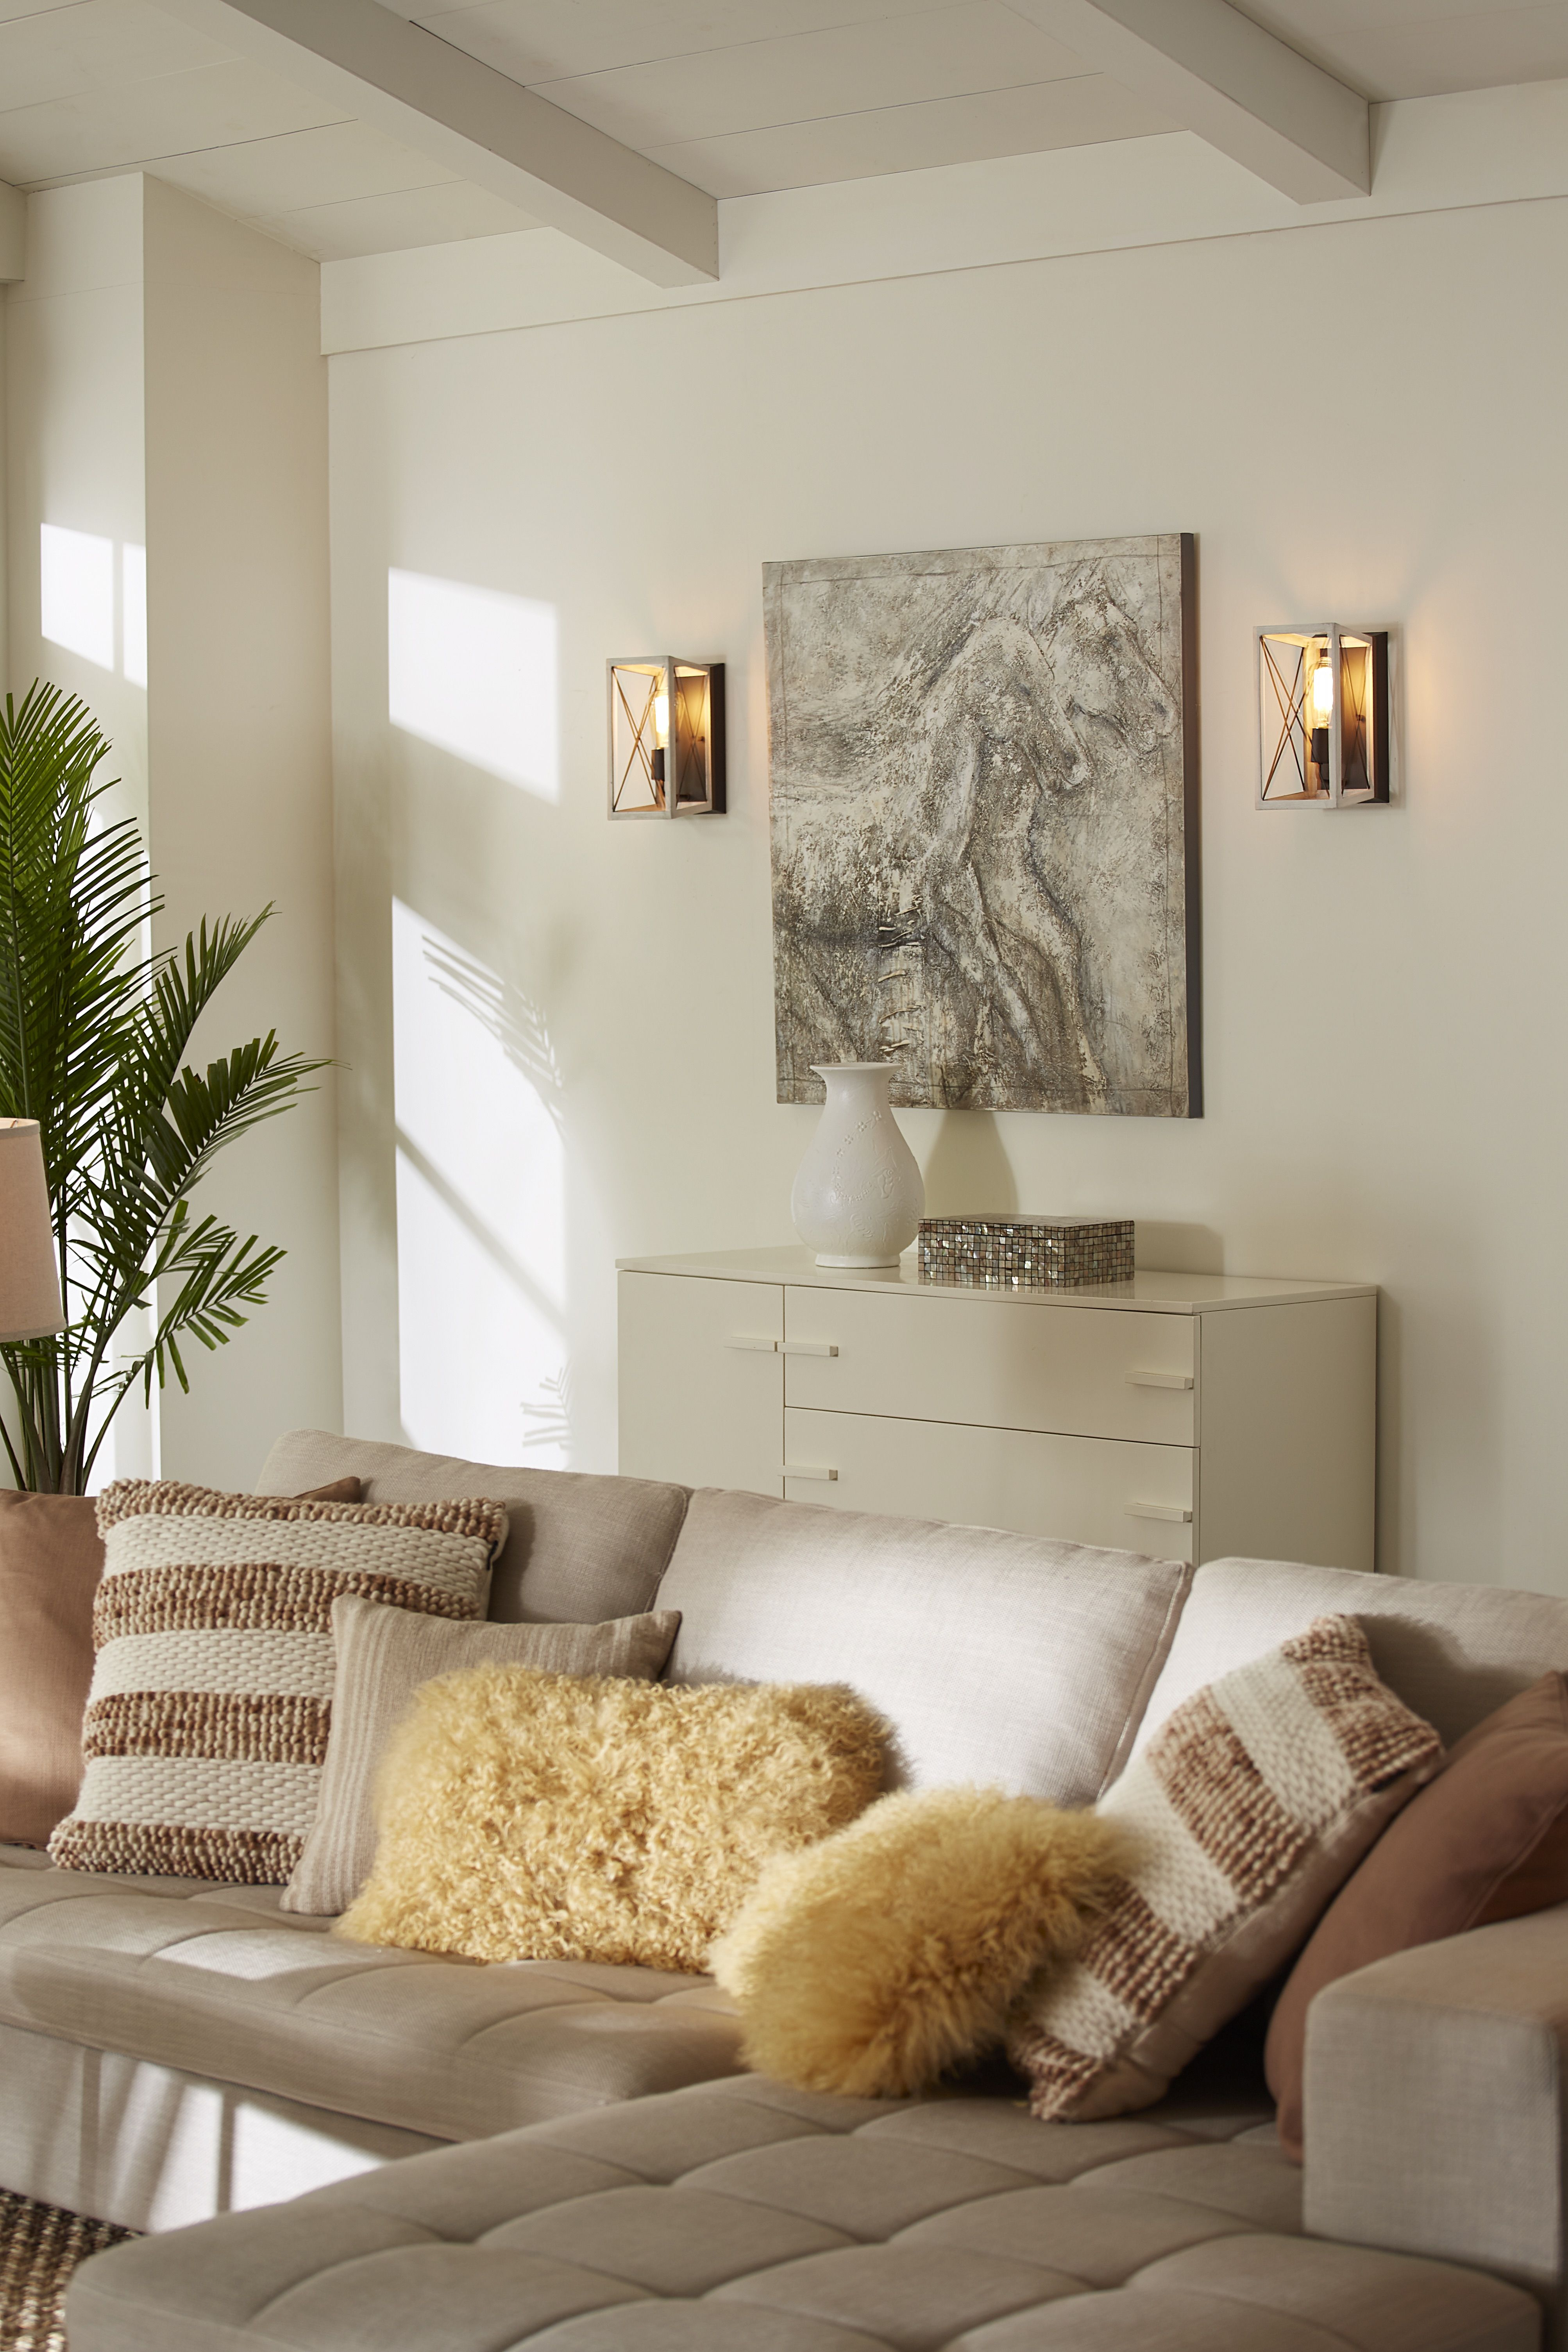 50 Awesome Traditional Wall Sconces Living Room Decor Ideas Trendehouse Wall Sconces Living Room Sconces Living Room Sconce Lighting Living Room